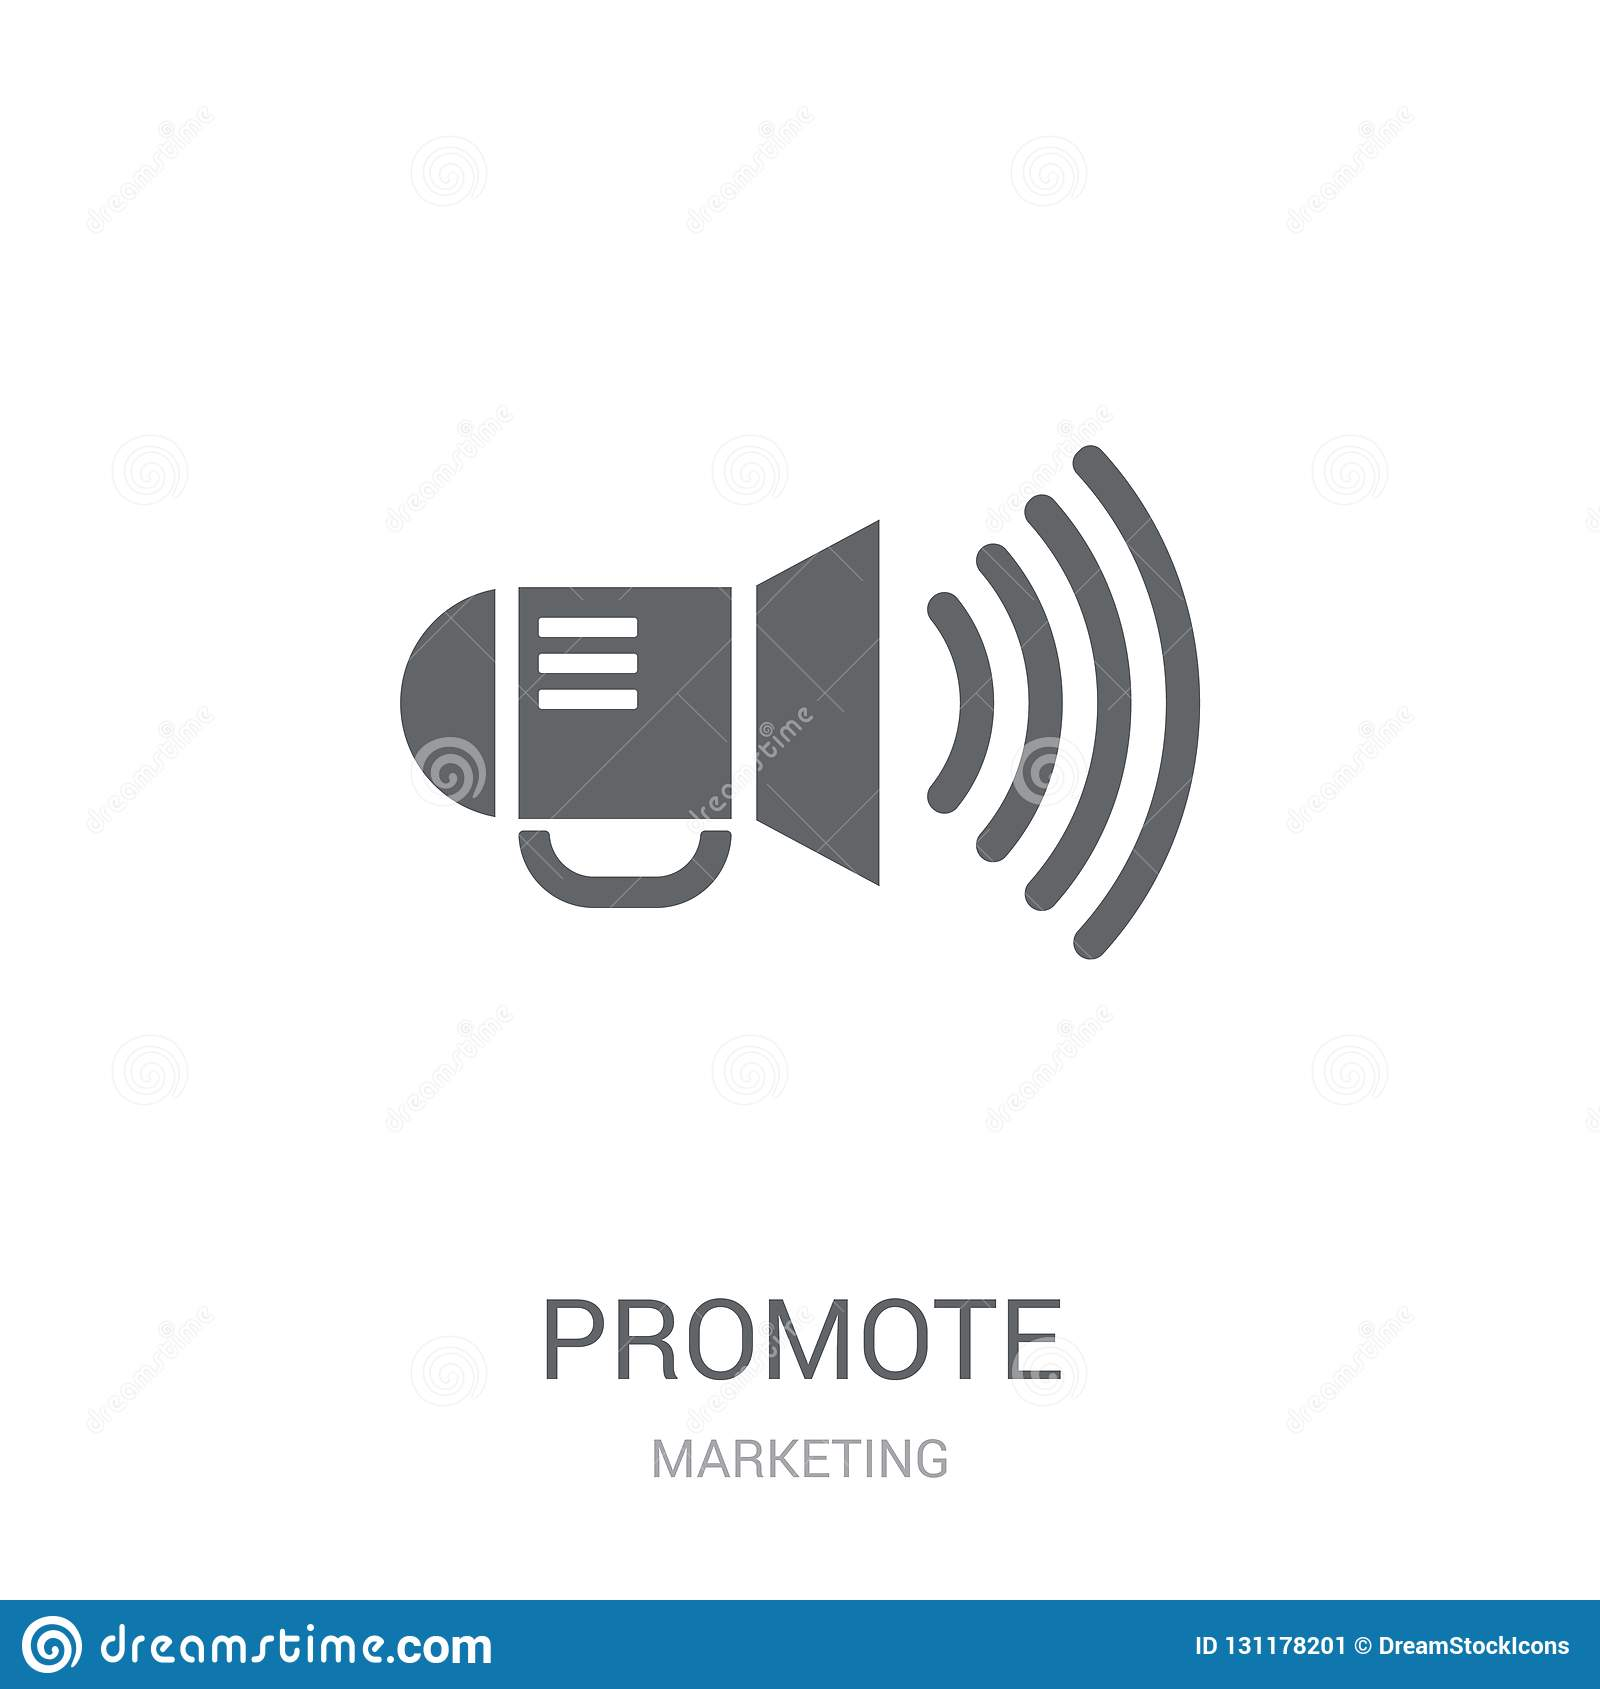 Promote icon. Trendy Promote logo concept on white background fr